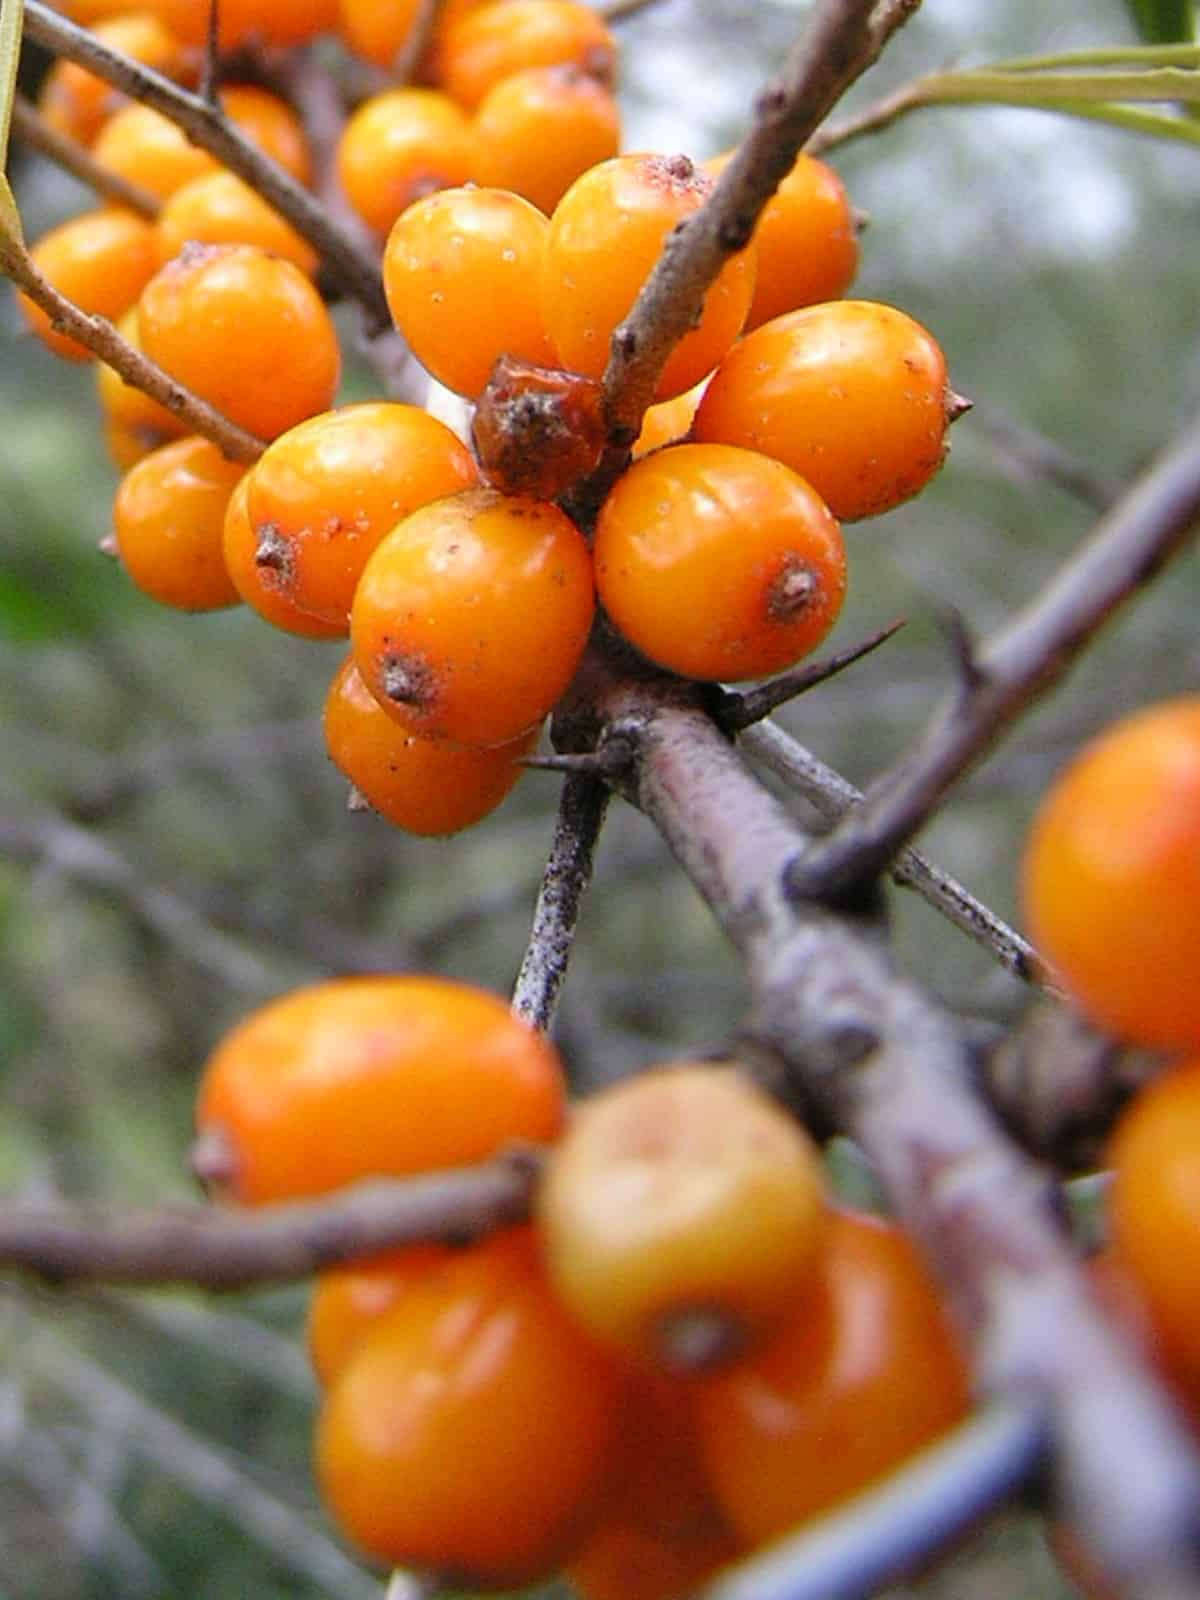 Persimmons on a tree branch